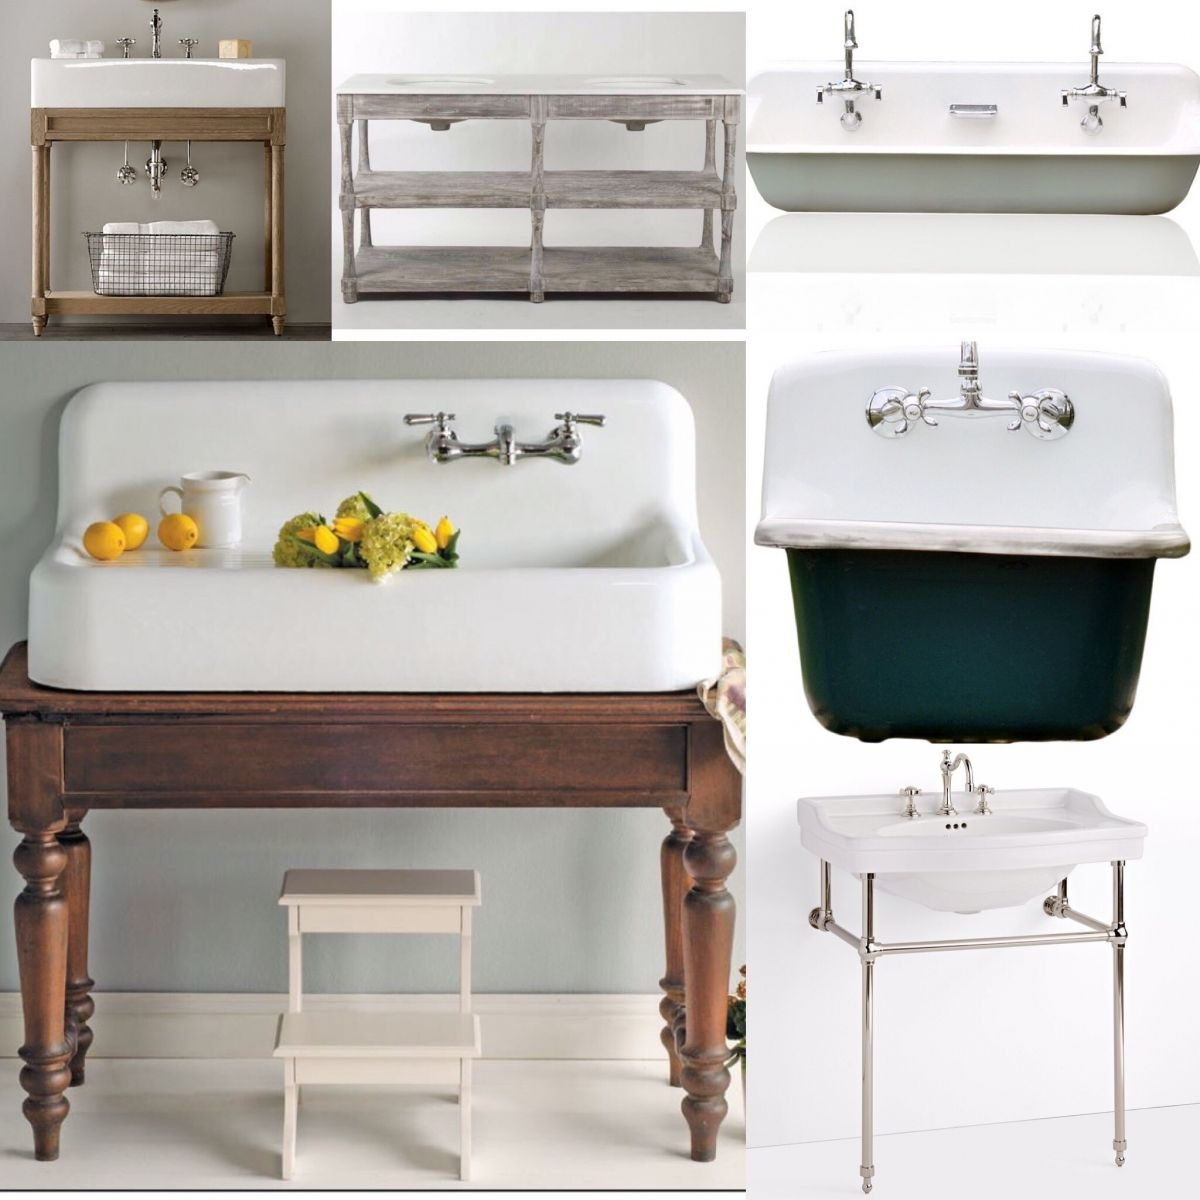 If You Re Building A Farmhouse Or Looking To Remodel Bathroom Here Are Some Fabulous Washstand Options Create One Of Kind Look By